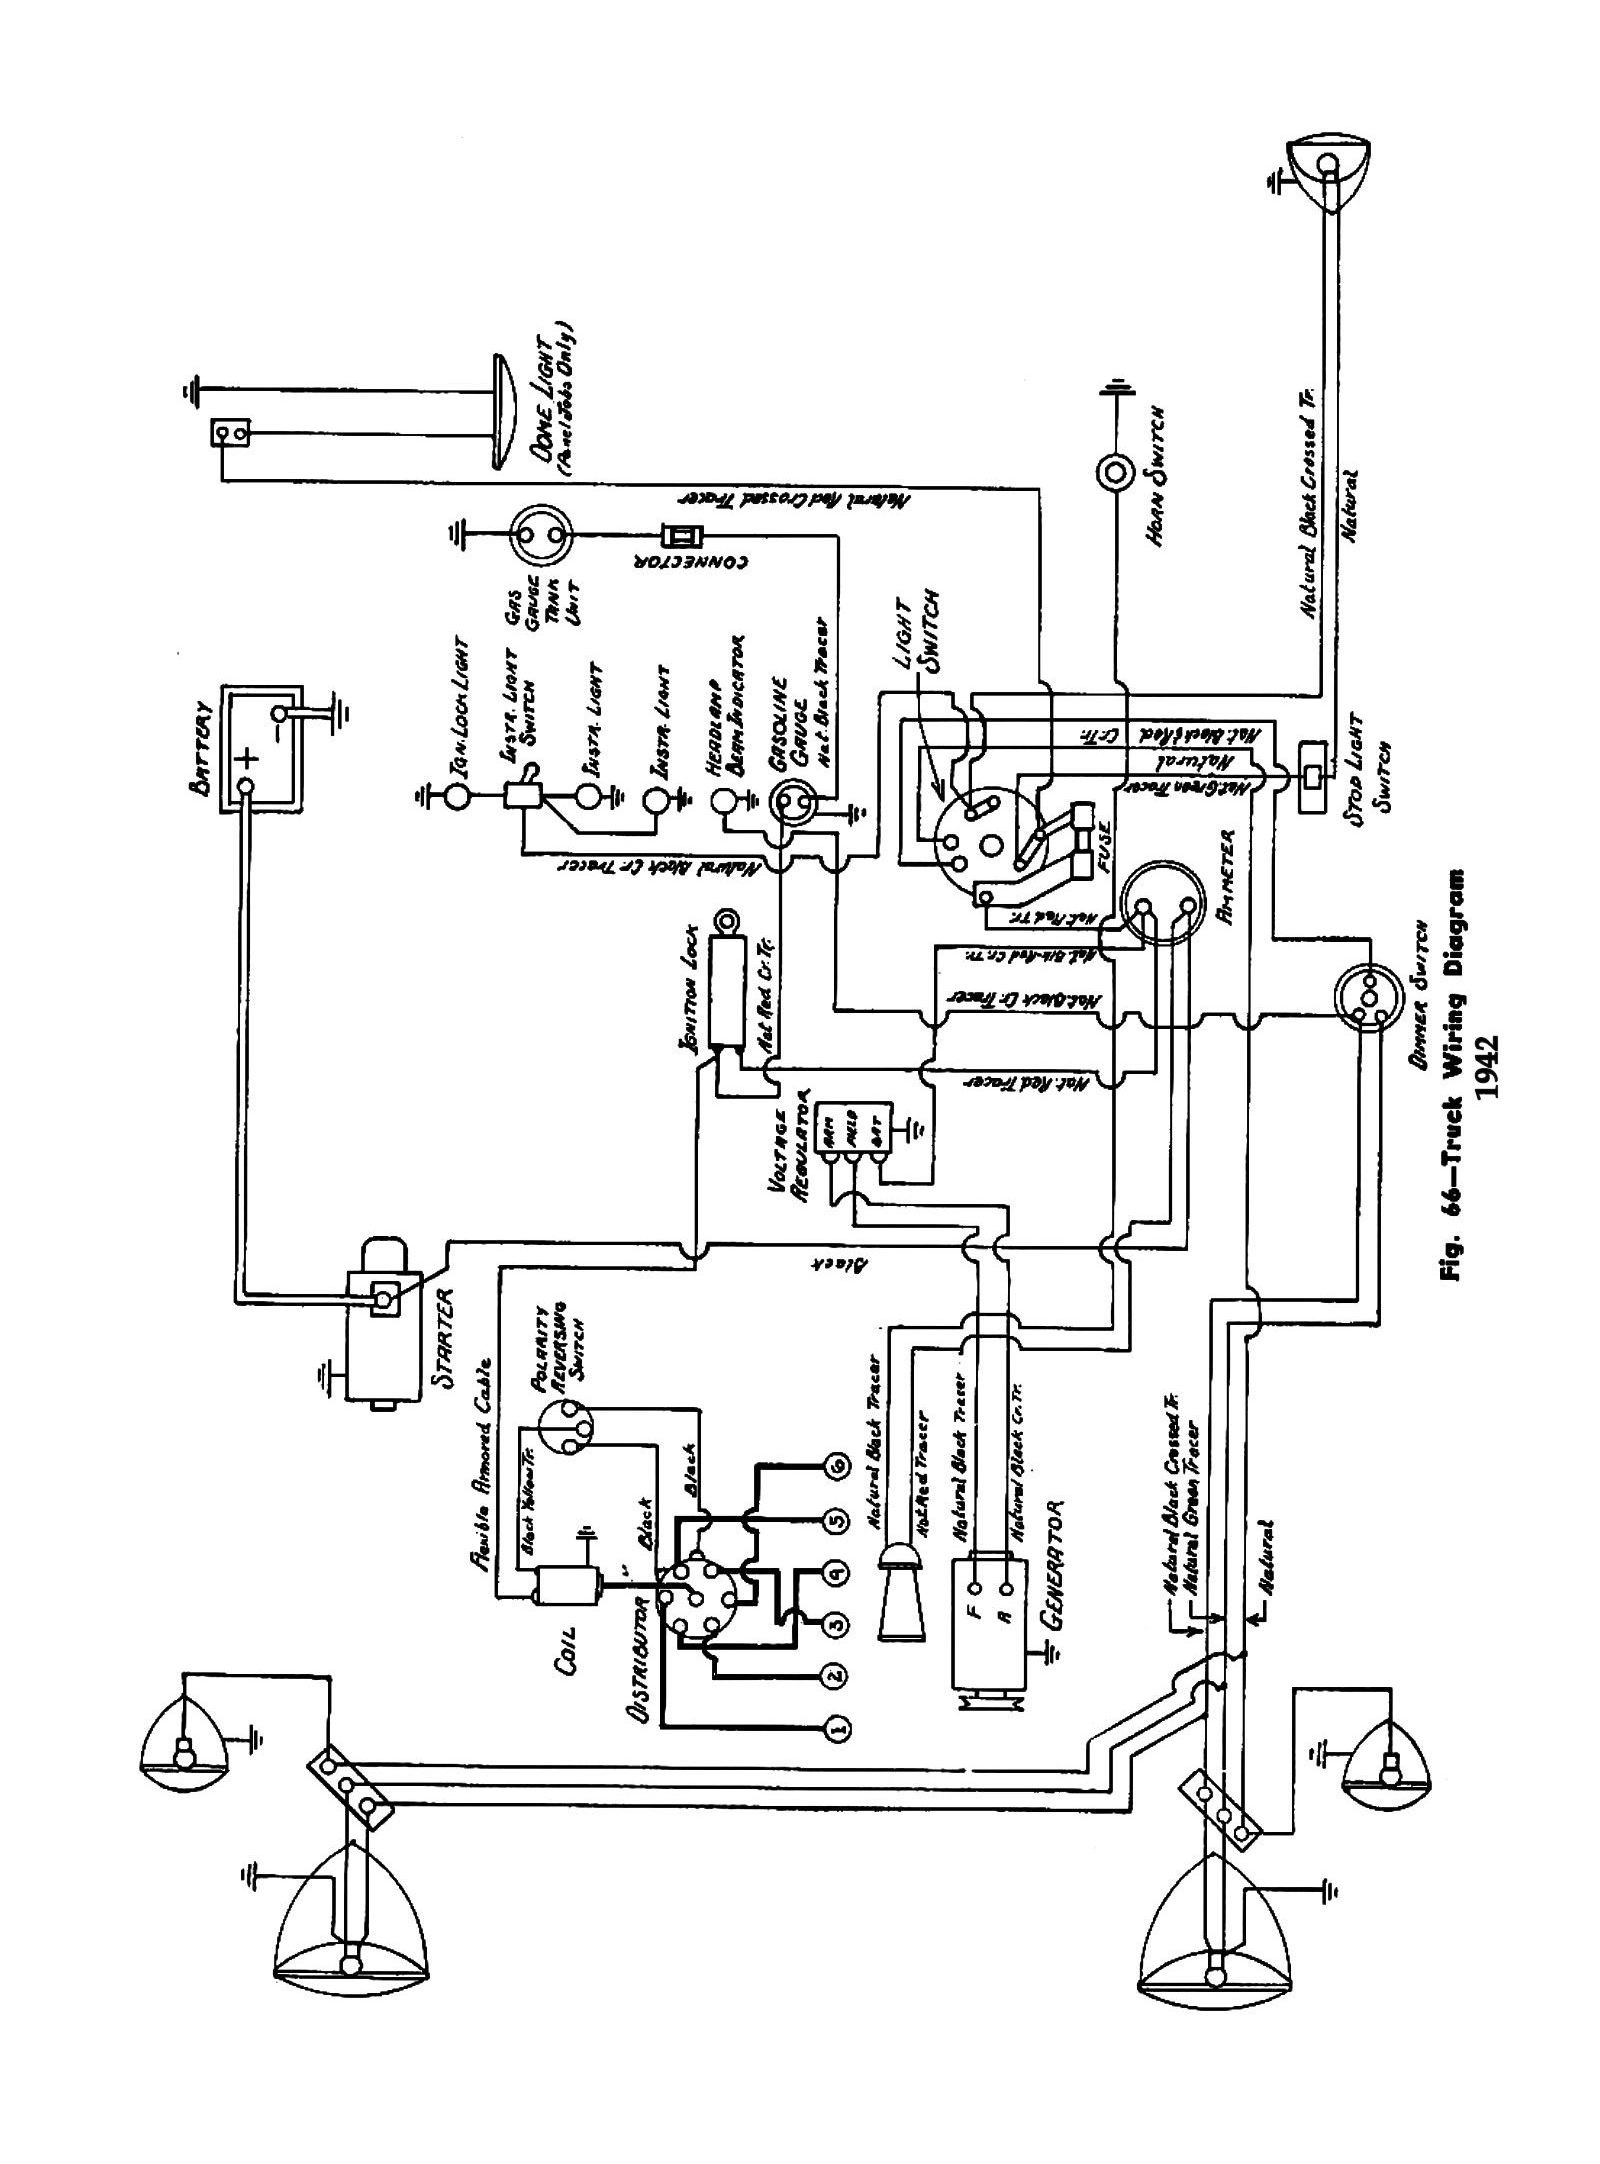 Basic Engine Wiring